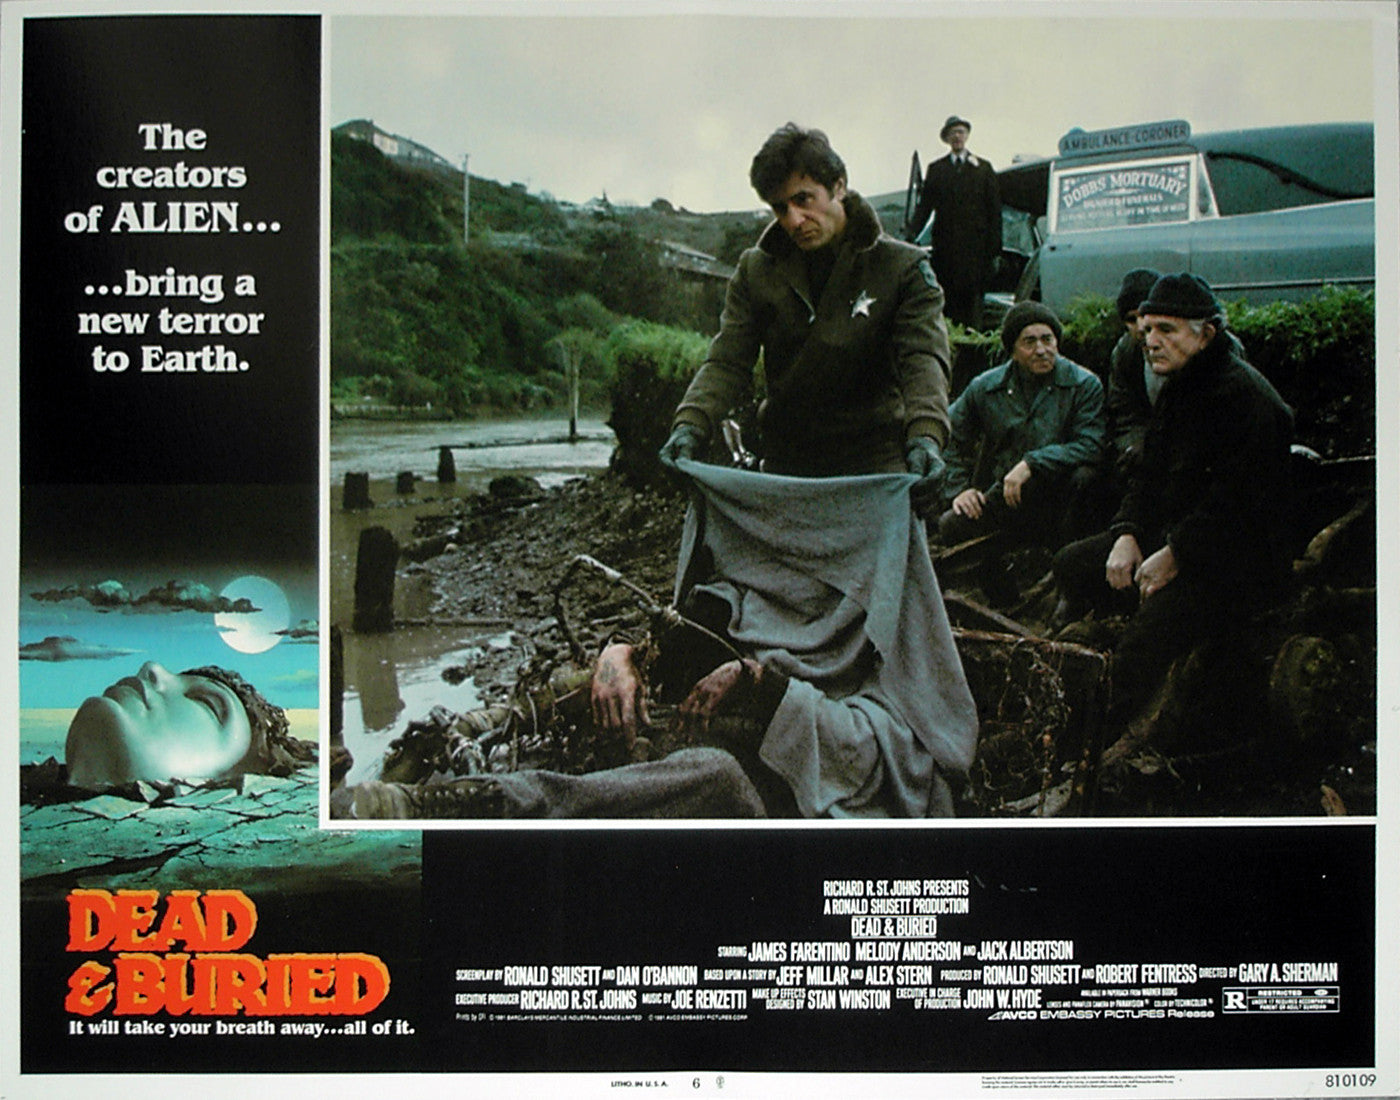 DEAD & BURIED - US lobby card v6